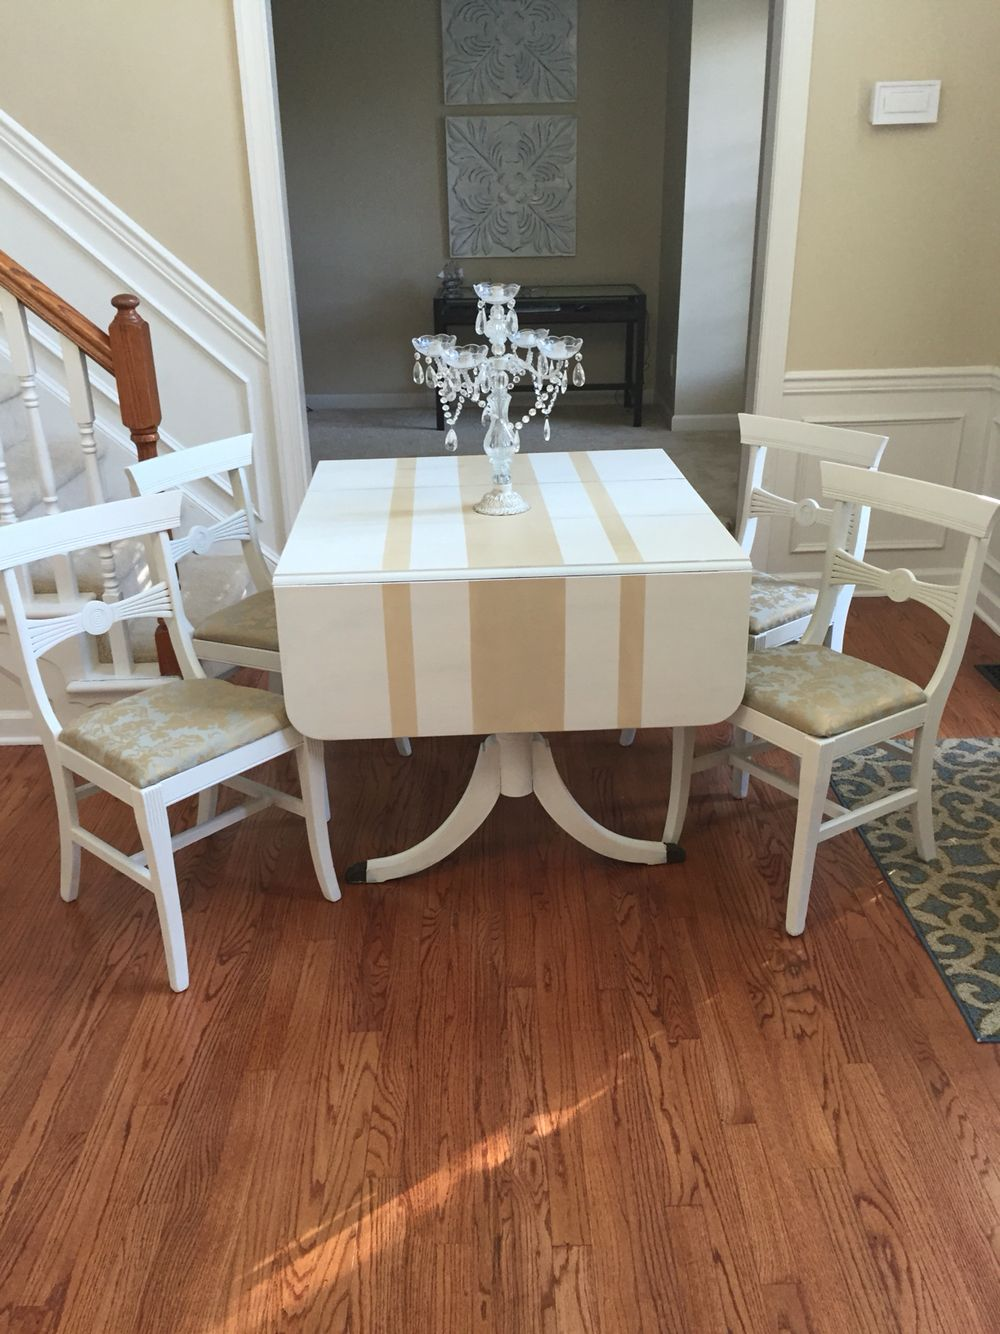 Duncan Phyfe Table Makeover With Images Painted